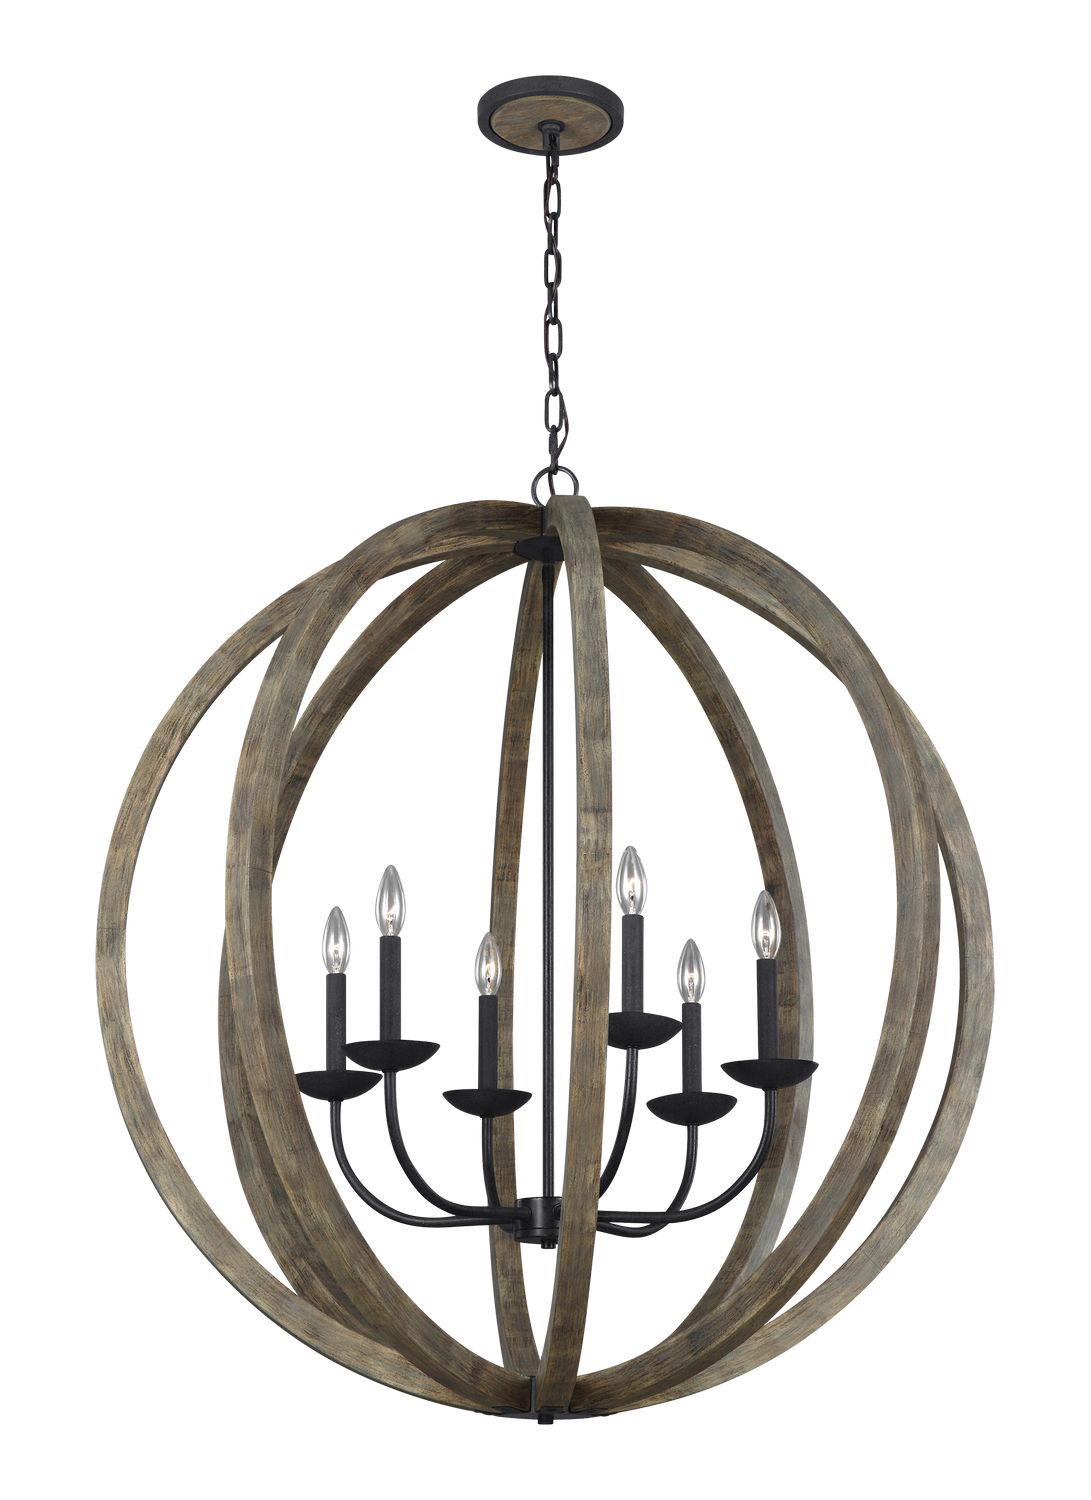 A chandelier is a key design focal point of a room so its important to find the right one for your home hortons has a vast selection of chandelier